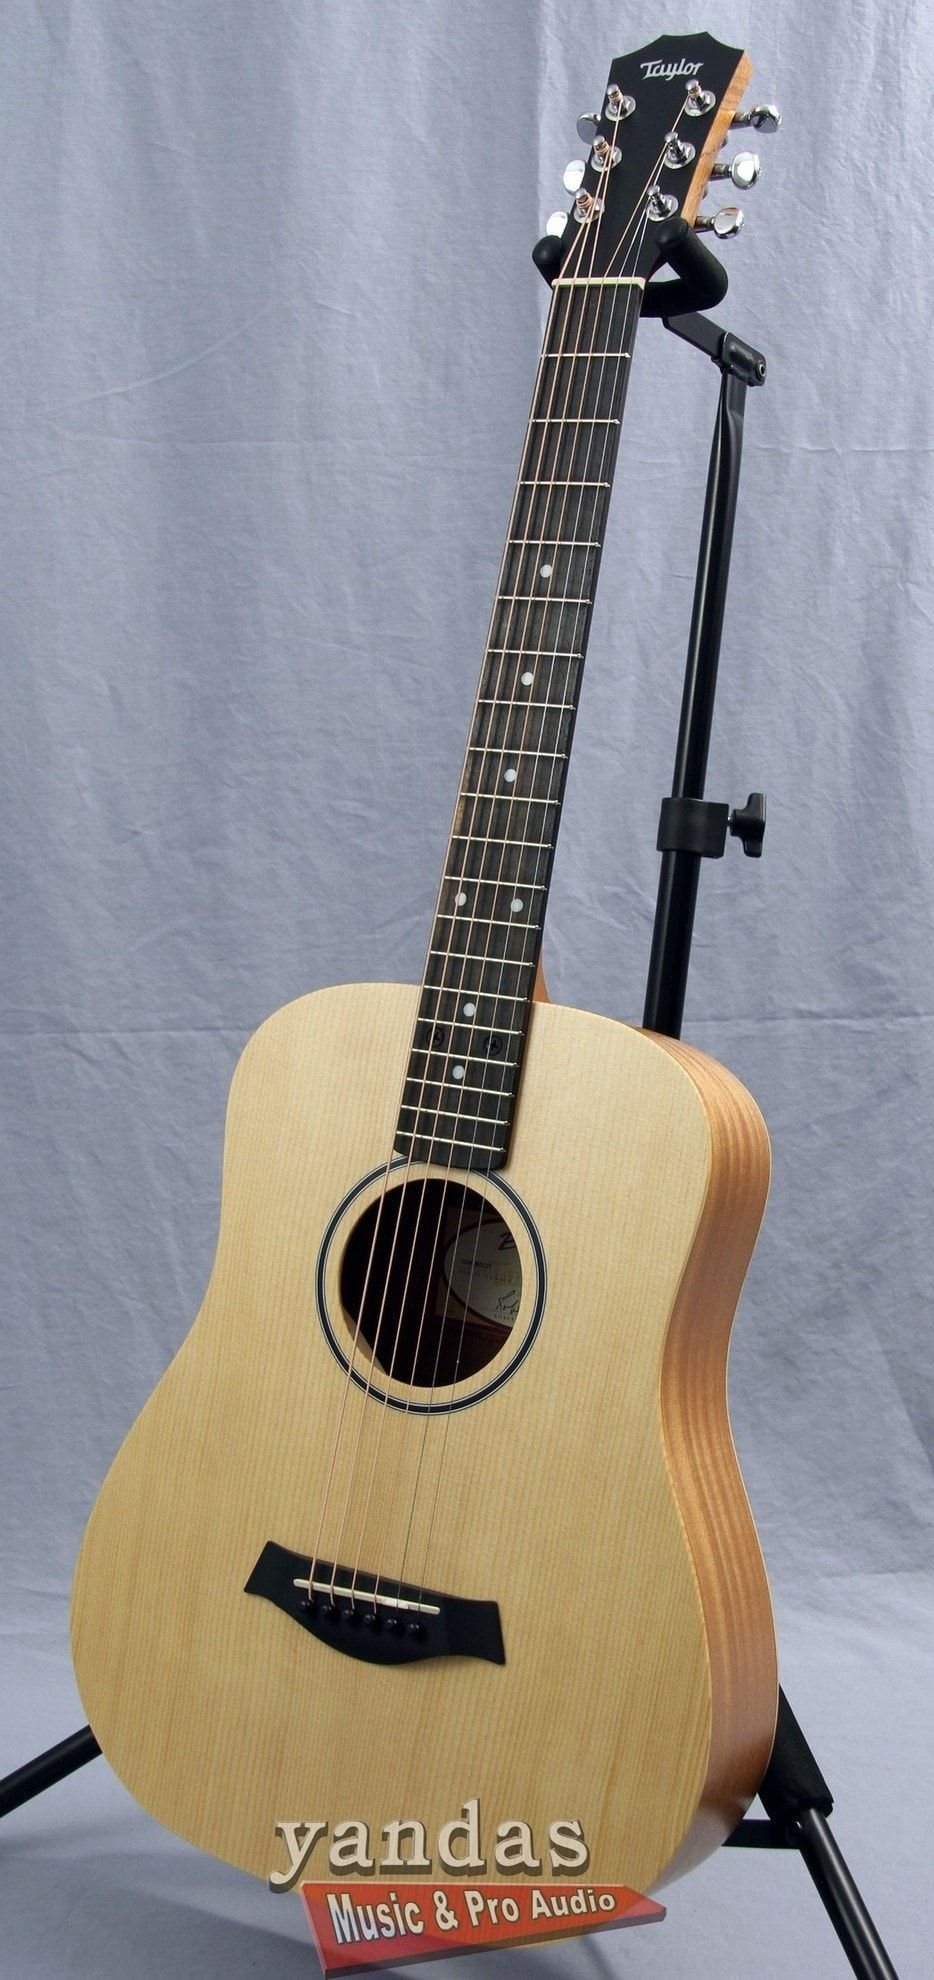 Taylor bt1 baby taylor acoustic guitar taylor acoustic guitar taylor bt1 baby taylor acoustic guitar cheapraybanclubmaster Gallery